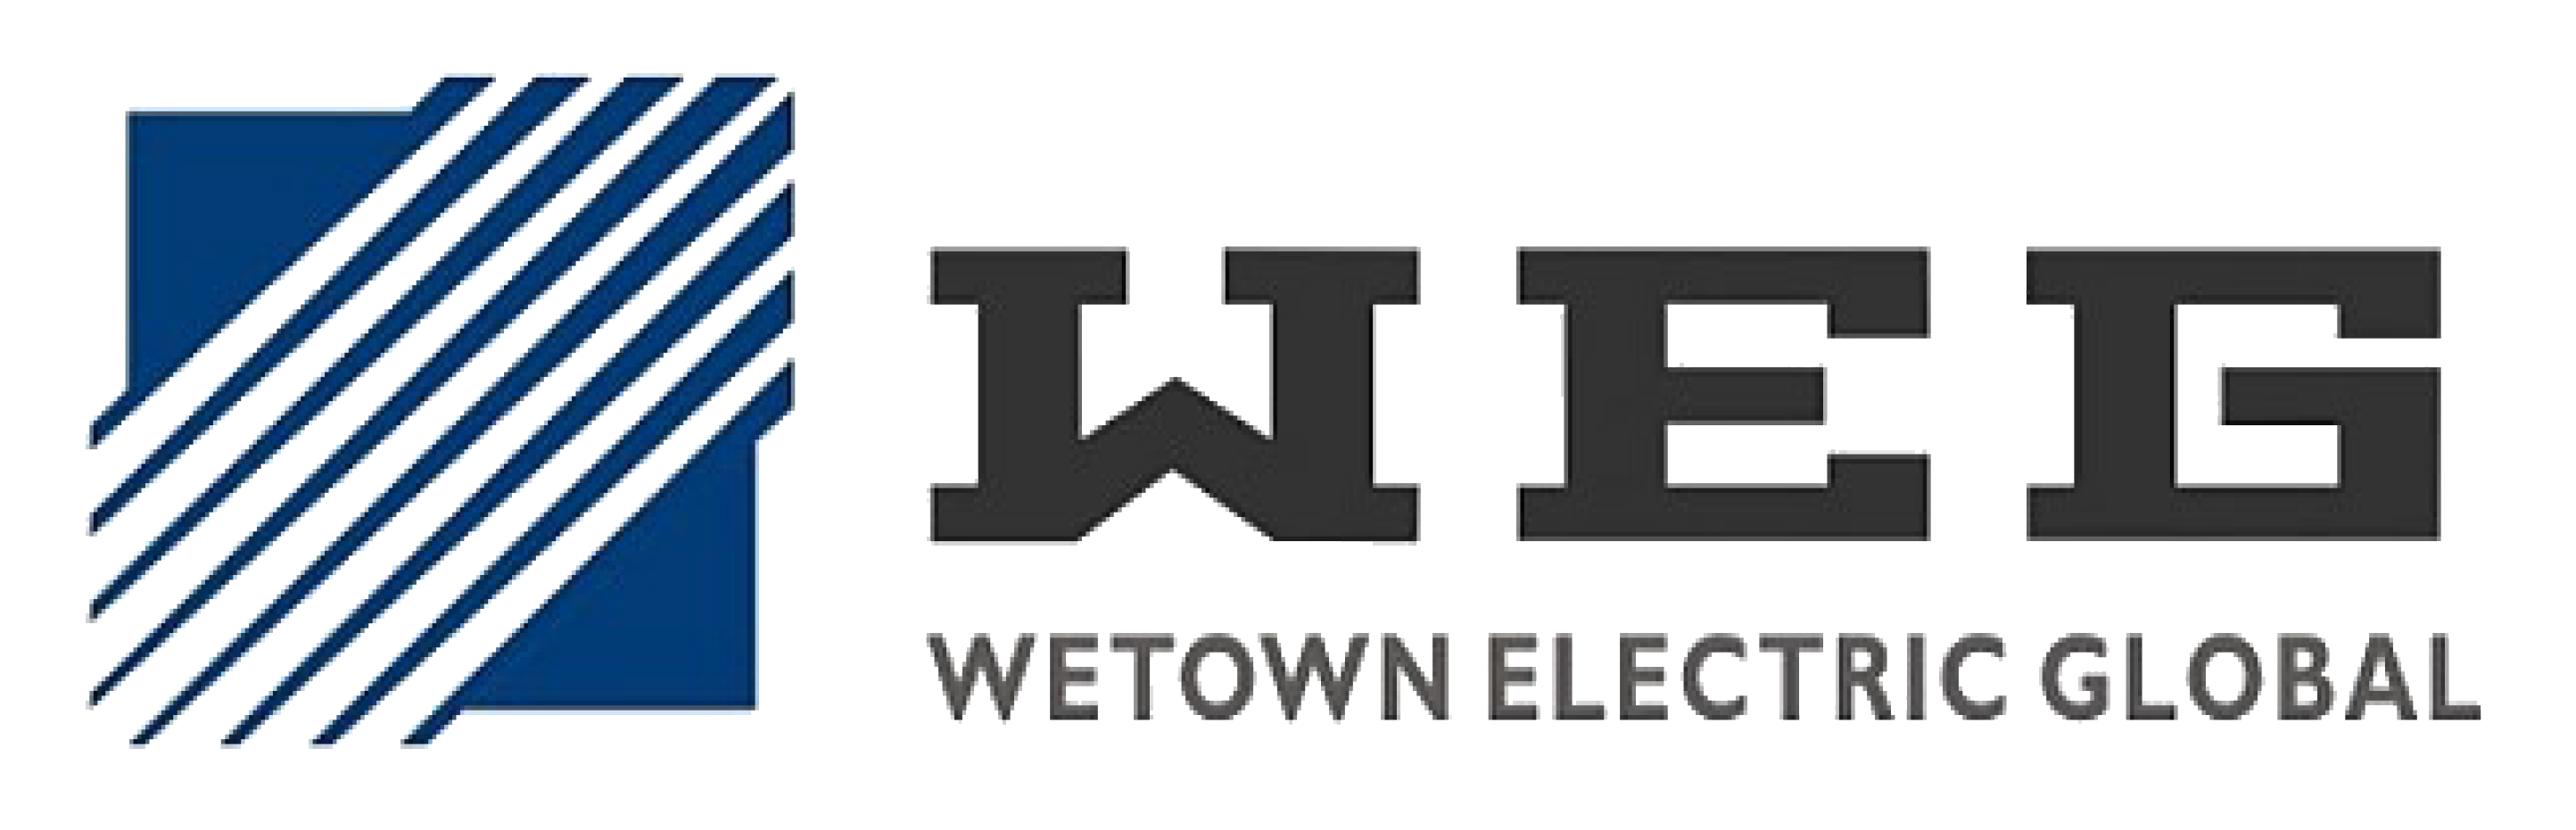 Wetown Electric (Global) Co., Ltd.